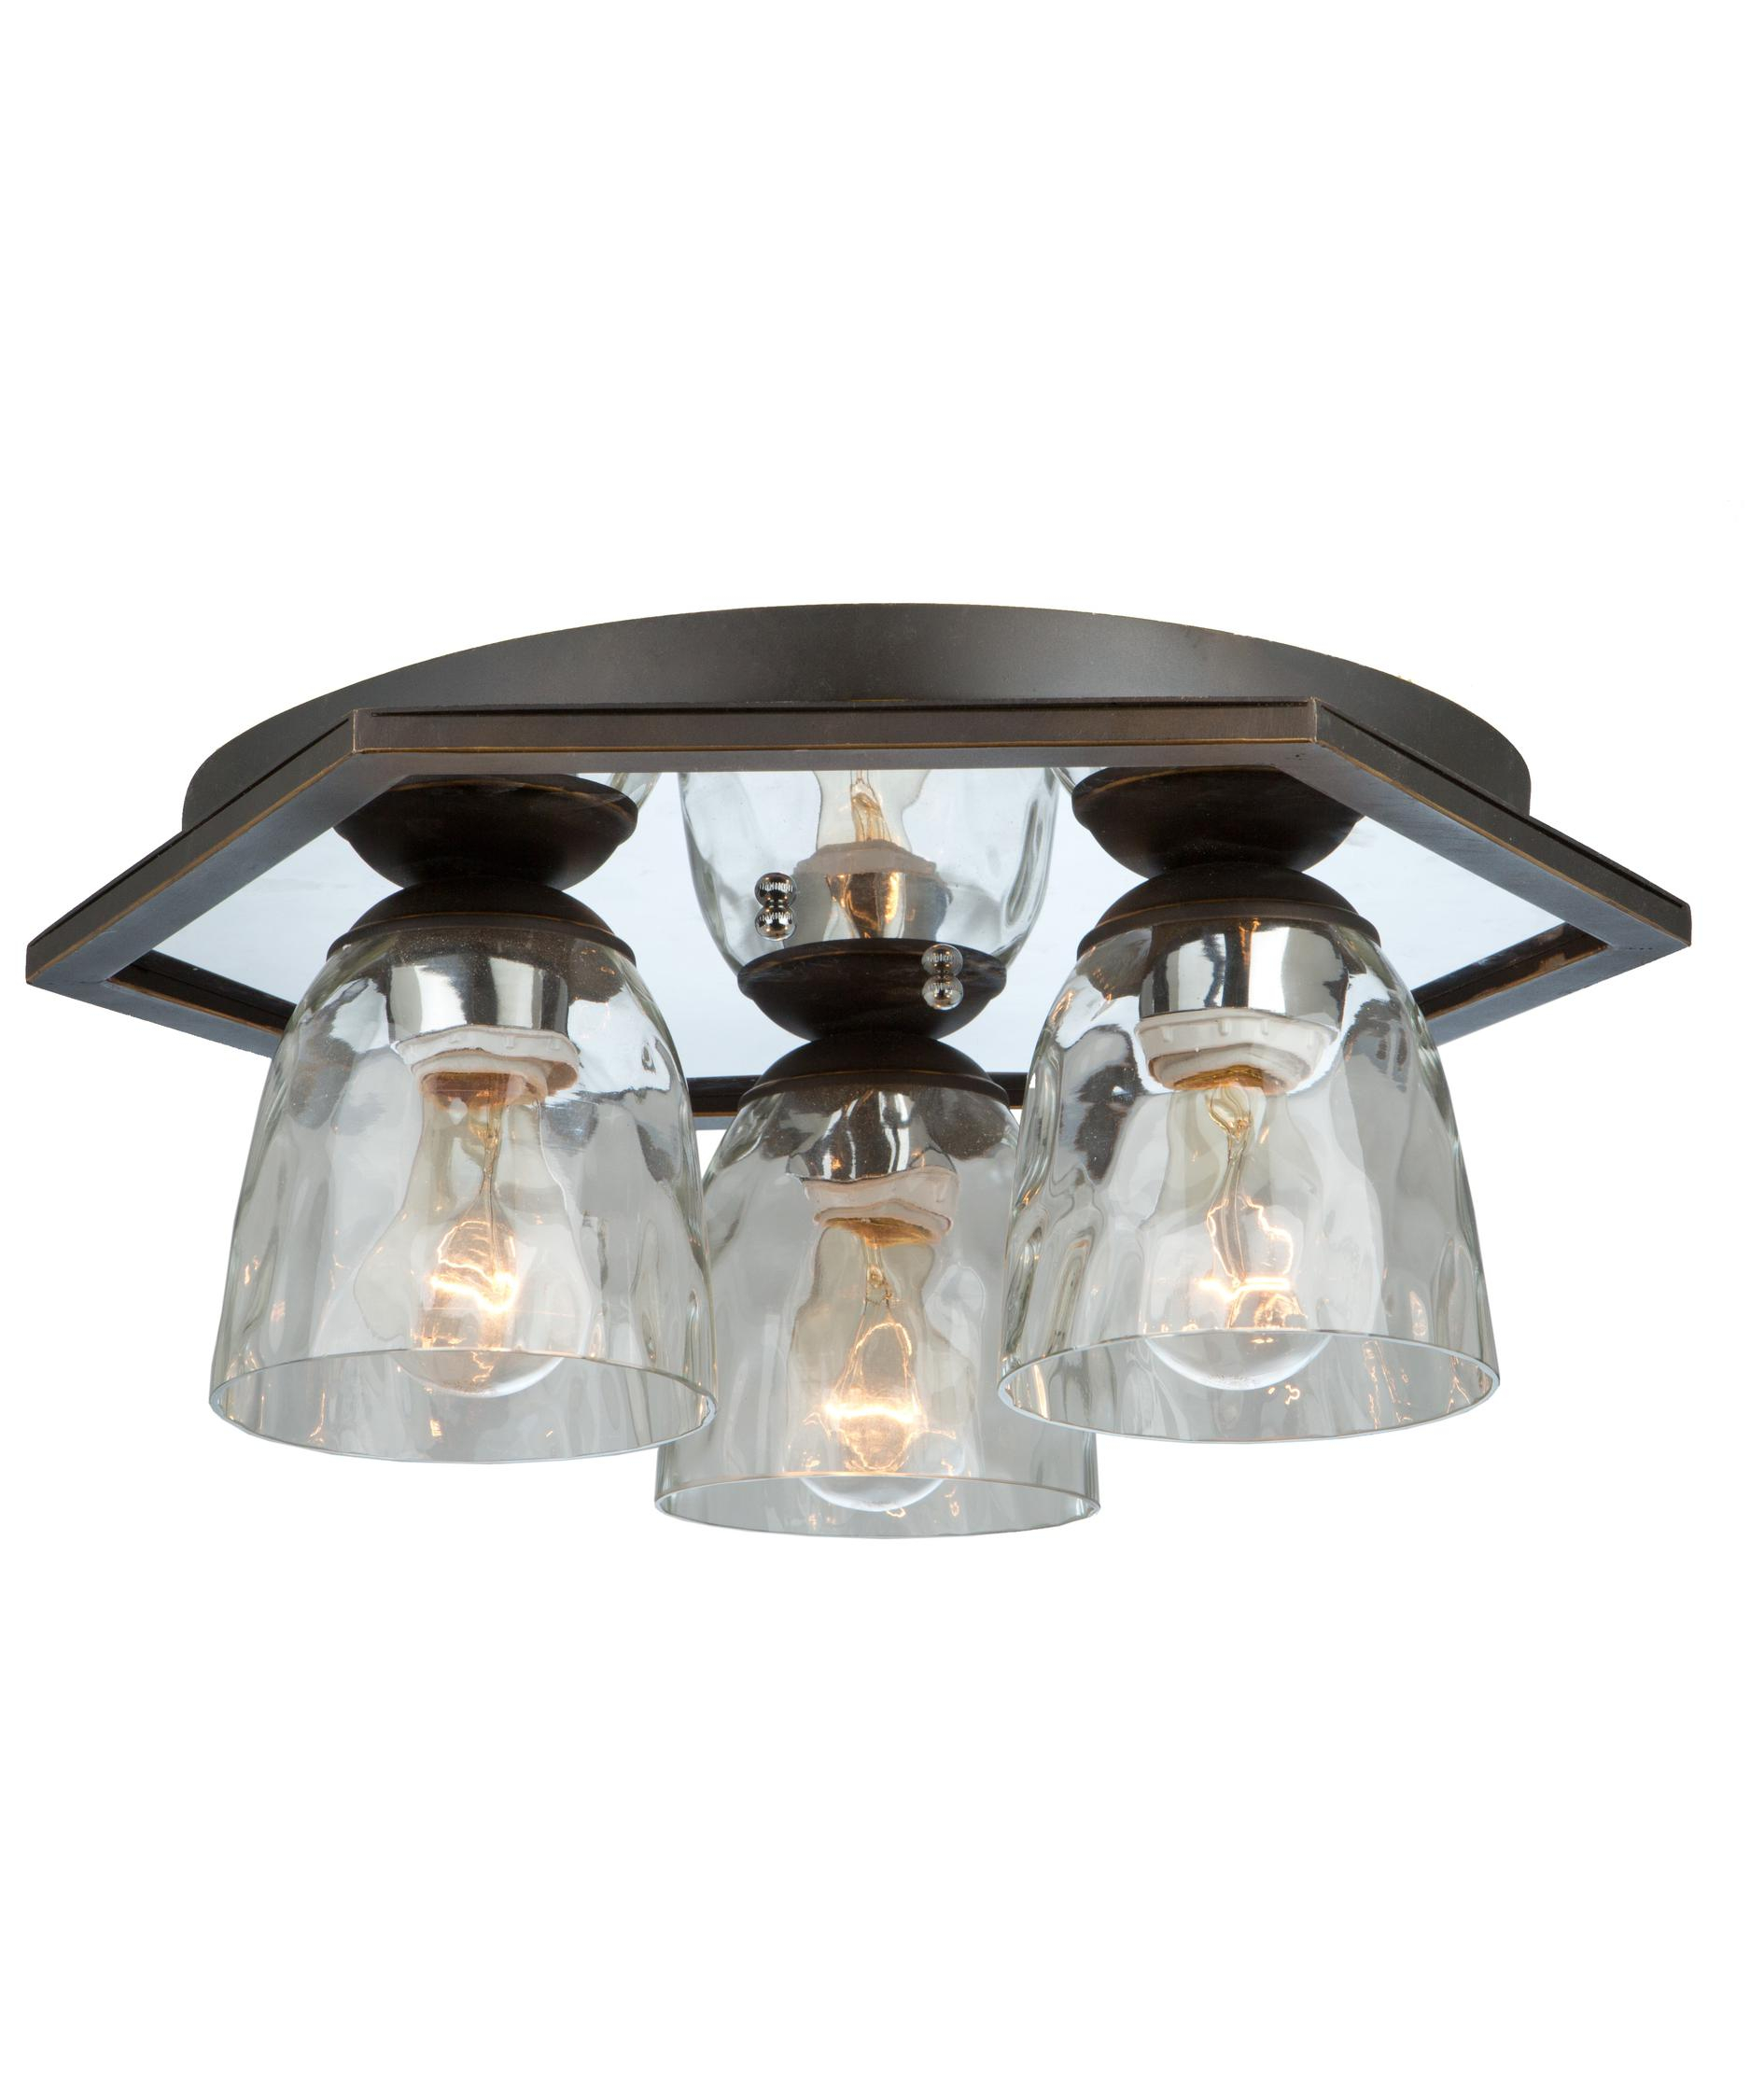 Ac10224ob Kent 18 3 Light Flush Mount In Oil Rubbed Bronze Artcraft Lighting in sizing 1875 X 2250